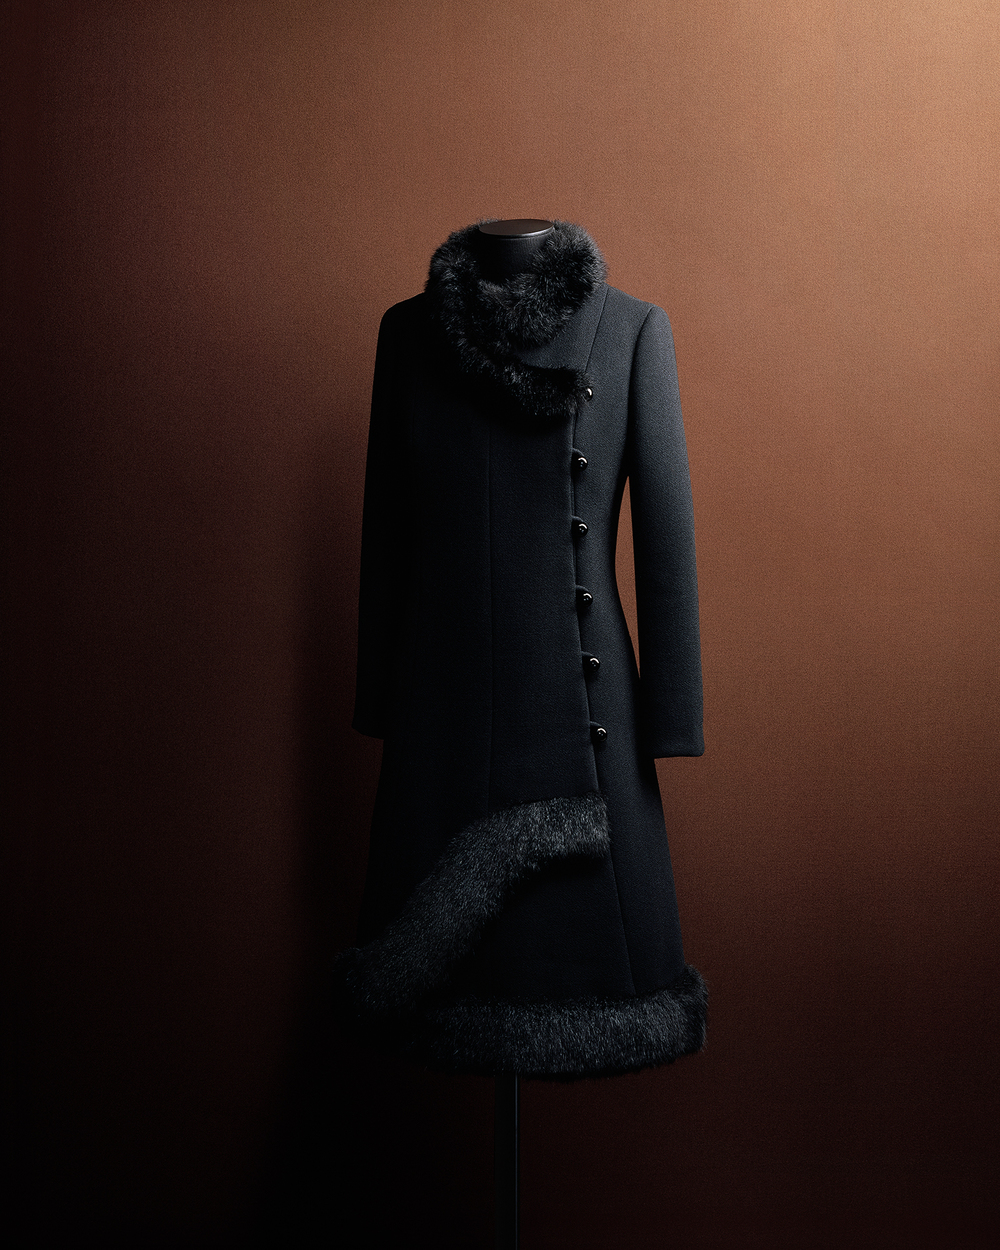 the_tree_mag-coats-by-maxmara-by-dhyan-bodha-derasmo-g-30.jpg